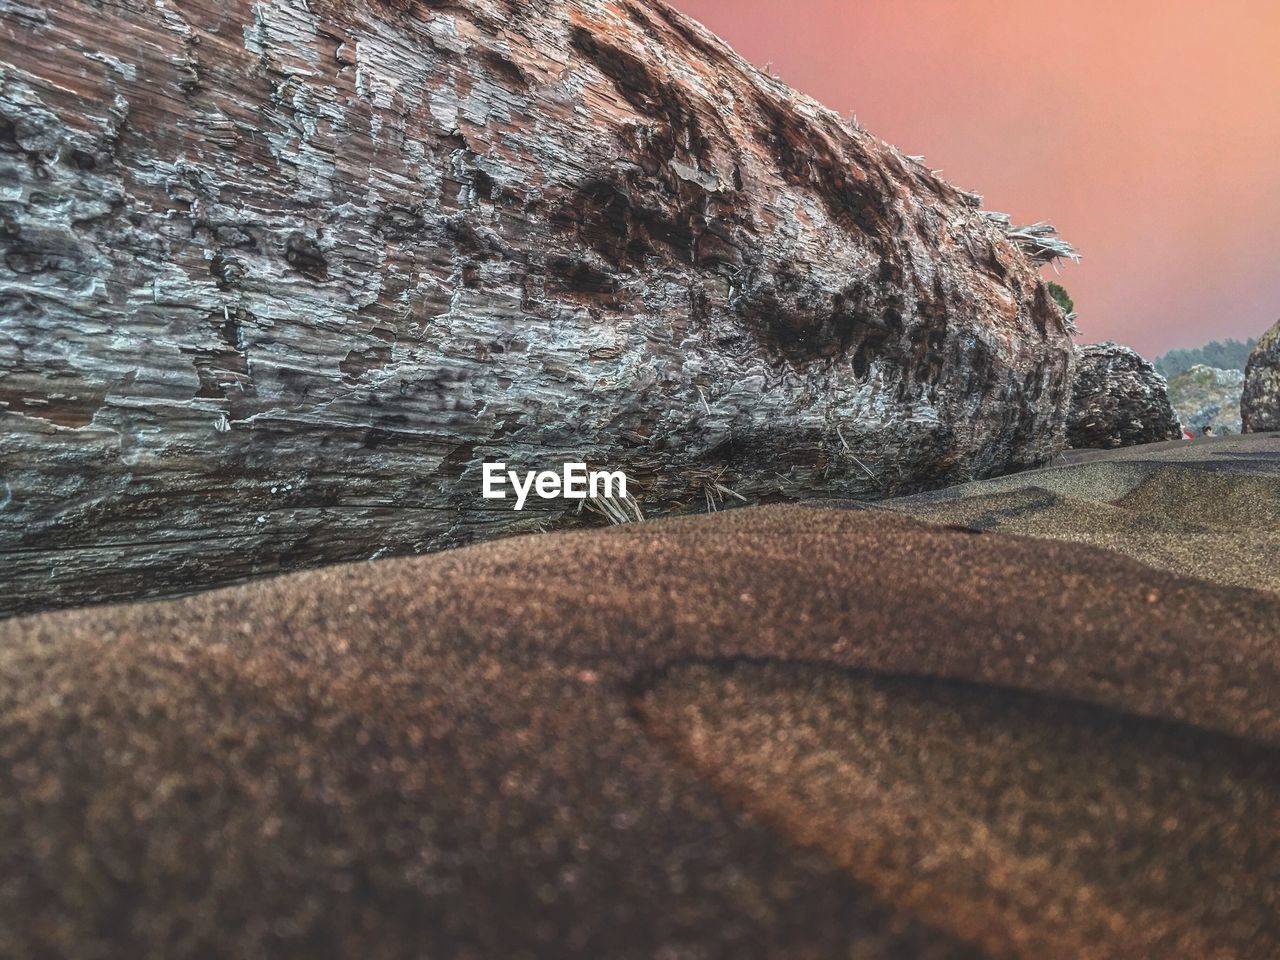 rock - object, nature, outdoors, textured, day, no people, beauty in nature, tranquility, sky, scenics, close-up